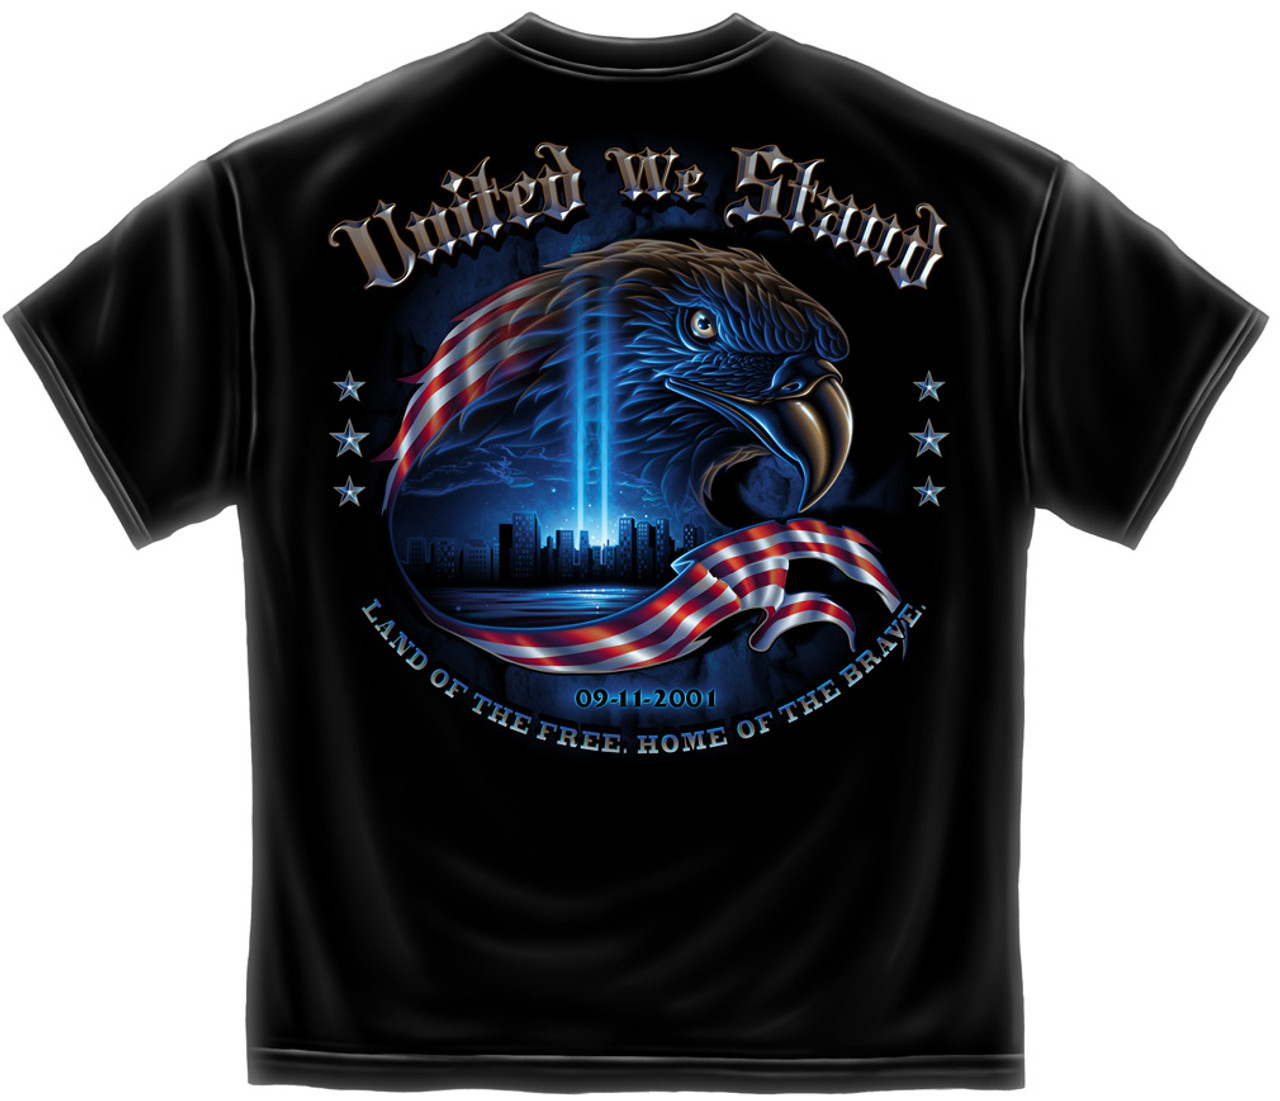 """**(ALL-NEW-PATRIOT """"UNITED-WE-STAND-COMMERATIVE-OF 9-11-2001"""", TWIN-TOWER-TEES,NICE-CUSTOM-DETAILED-GRAPHIC-PRINTED/PREMIUM-DOUBLE-SIDED-GRAPHIC-TEES:)**"""